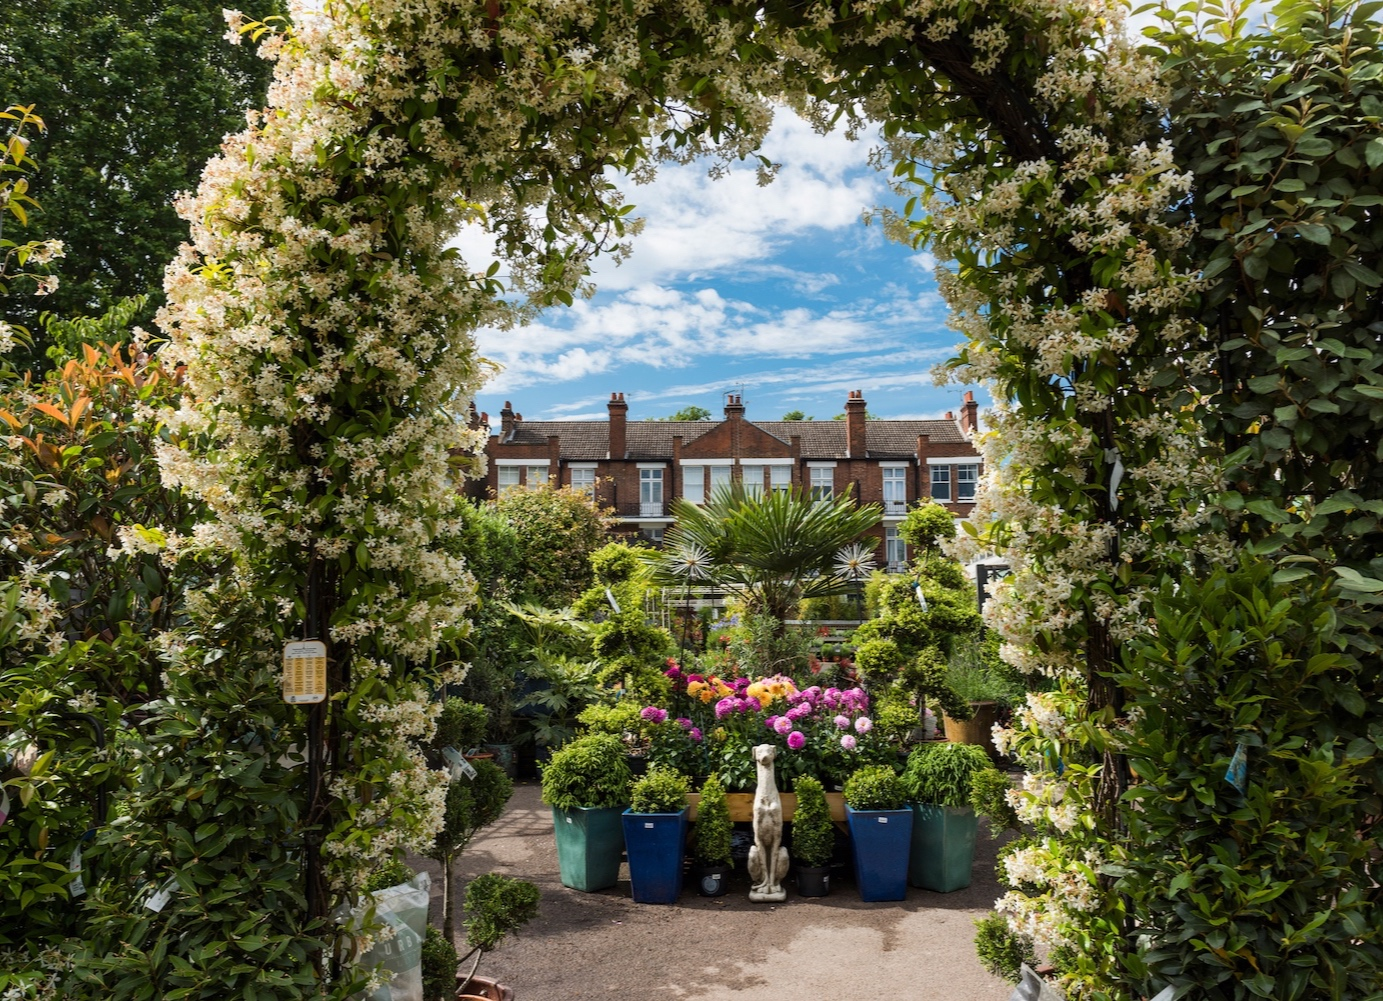 Secret Sanctuary Concerts - Saturday 31 August, 6.30pm-7.45pm, £8-£12The Palace Gardener, Putney Bridge🌳 Find a moment of calm in the lush surroundings of a garden centre next to Fulham Palace at the launch event of Secret Sanctuary Concerts, which brings live music to tranquil green spaces. There will be a programme of (mainly) classical music for oboe and classical guitar themed around gardens, performed by Julia White and Rebecca Baulch. You can pay £12 for a seat or save a few pounds by bringing your own cushion.